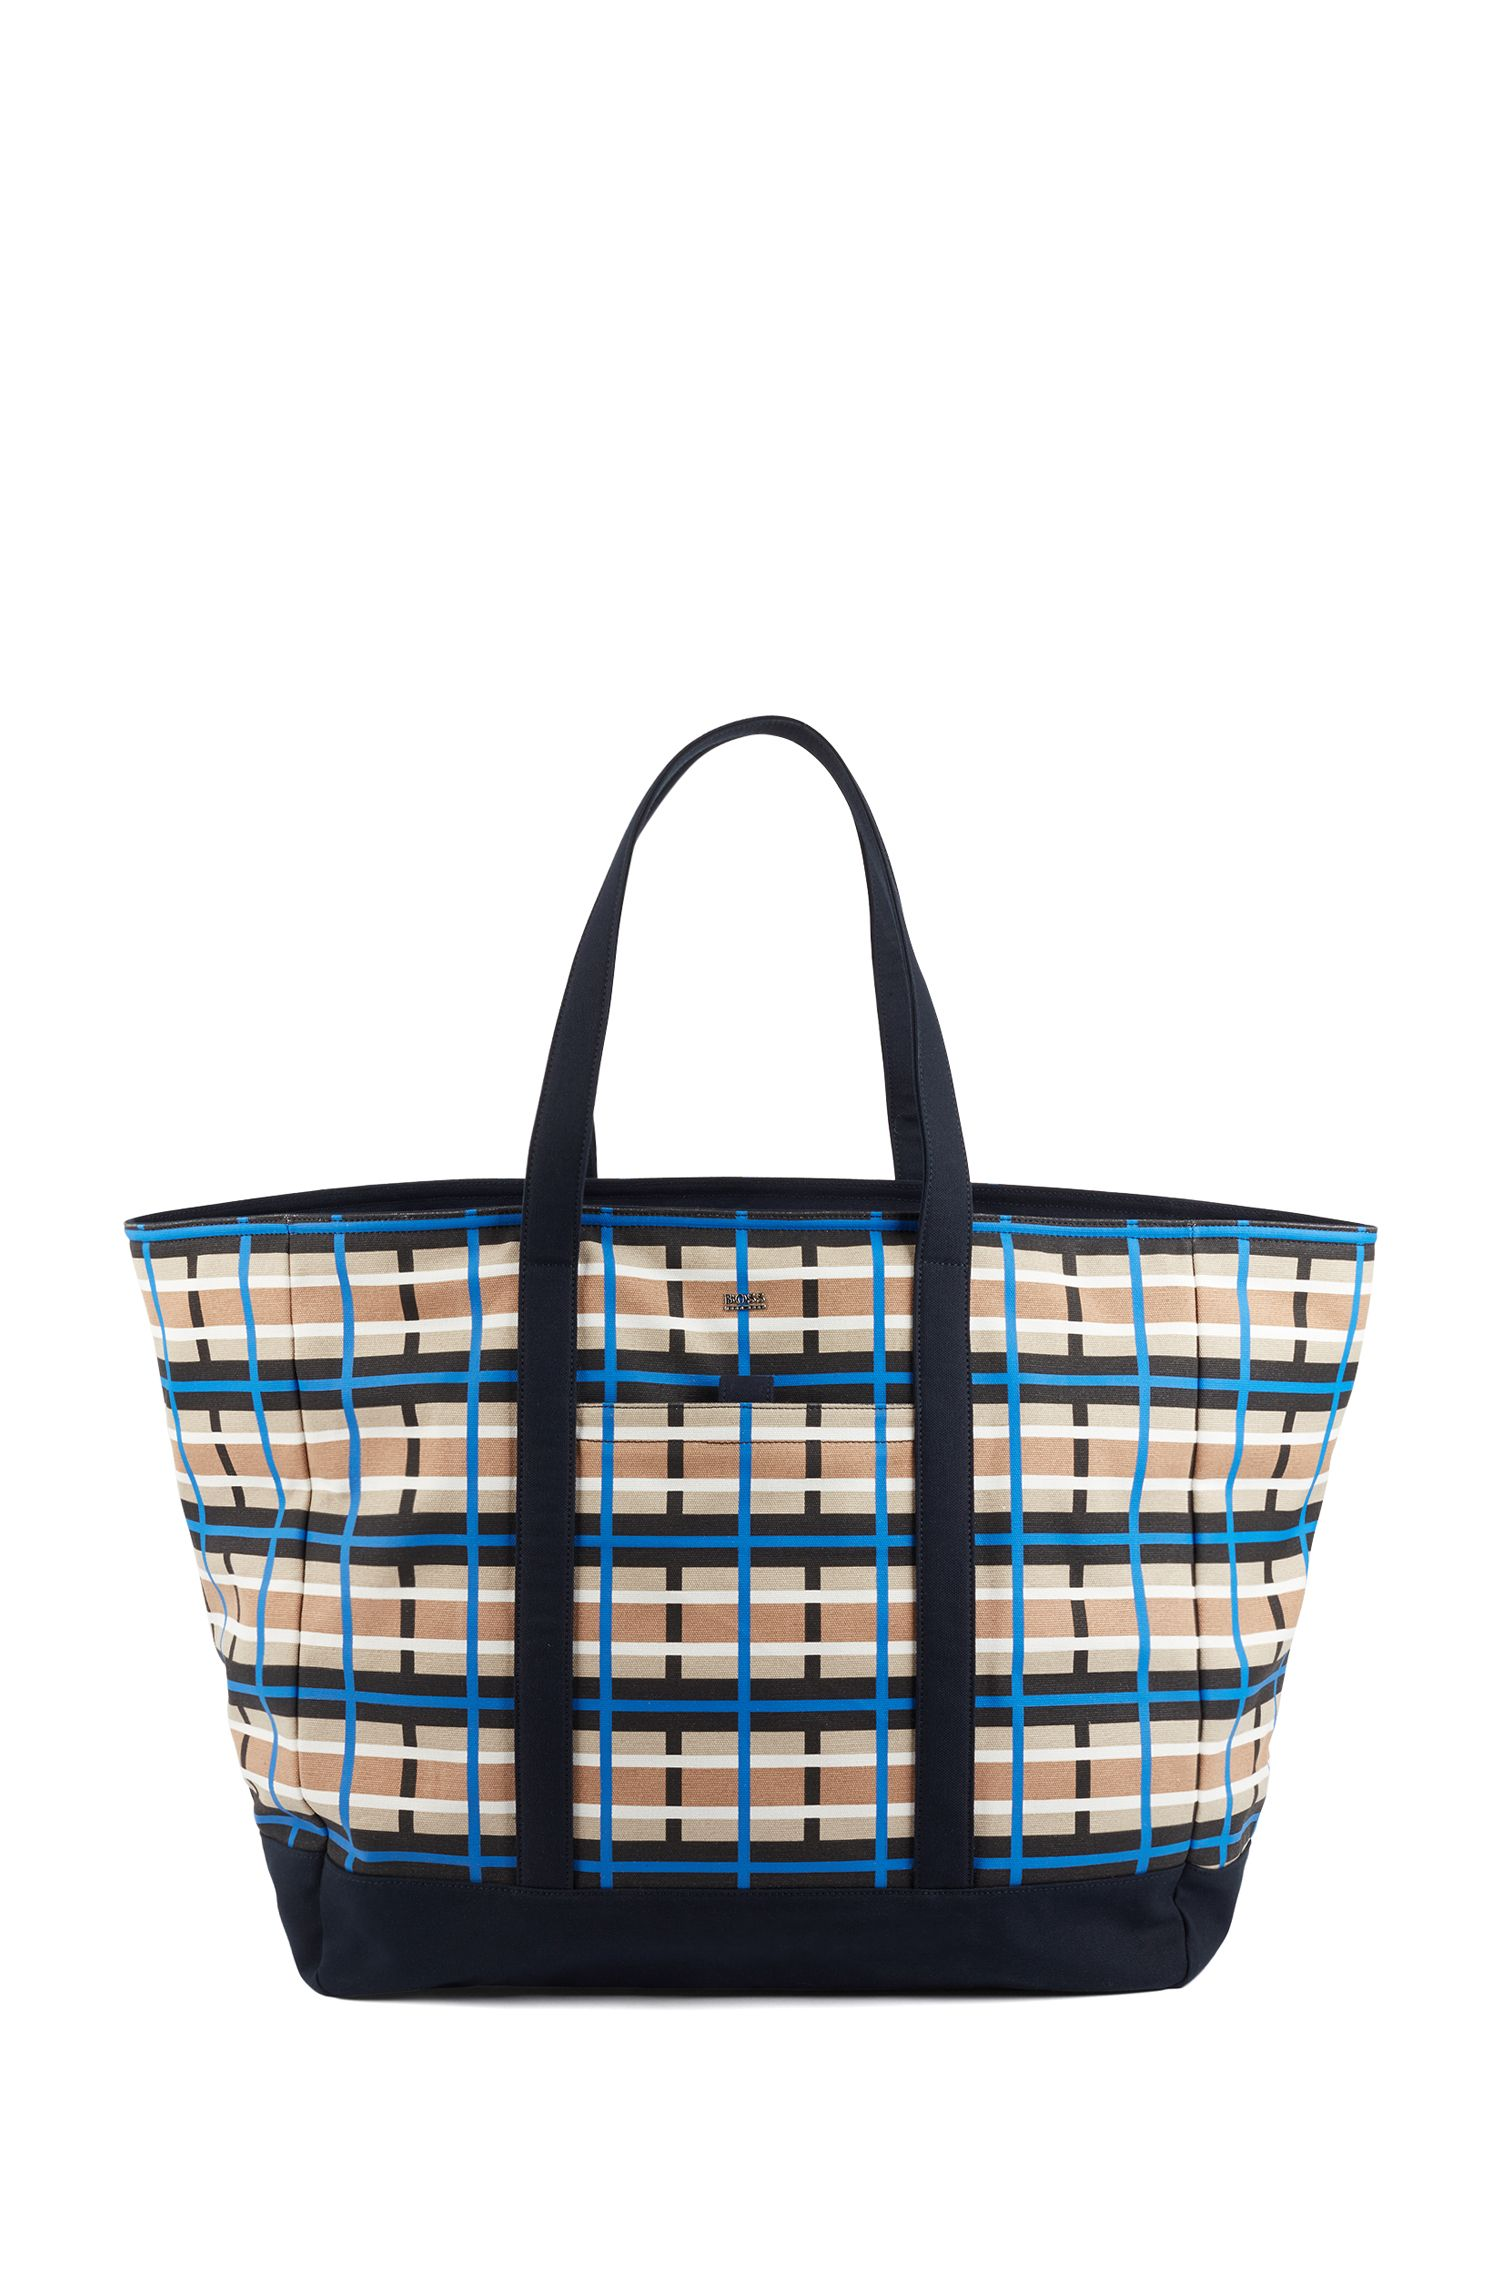 Italian-canvas tote bag with colorful check, Patterned